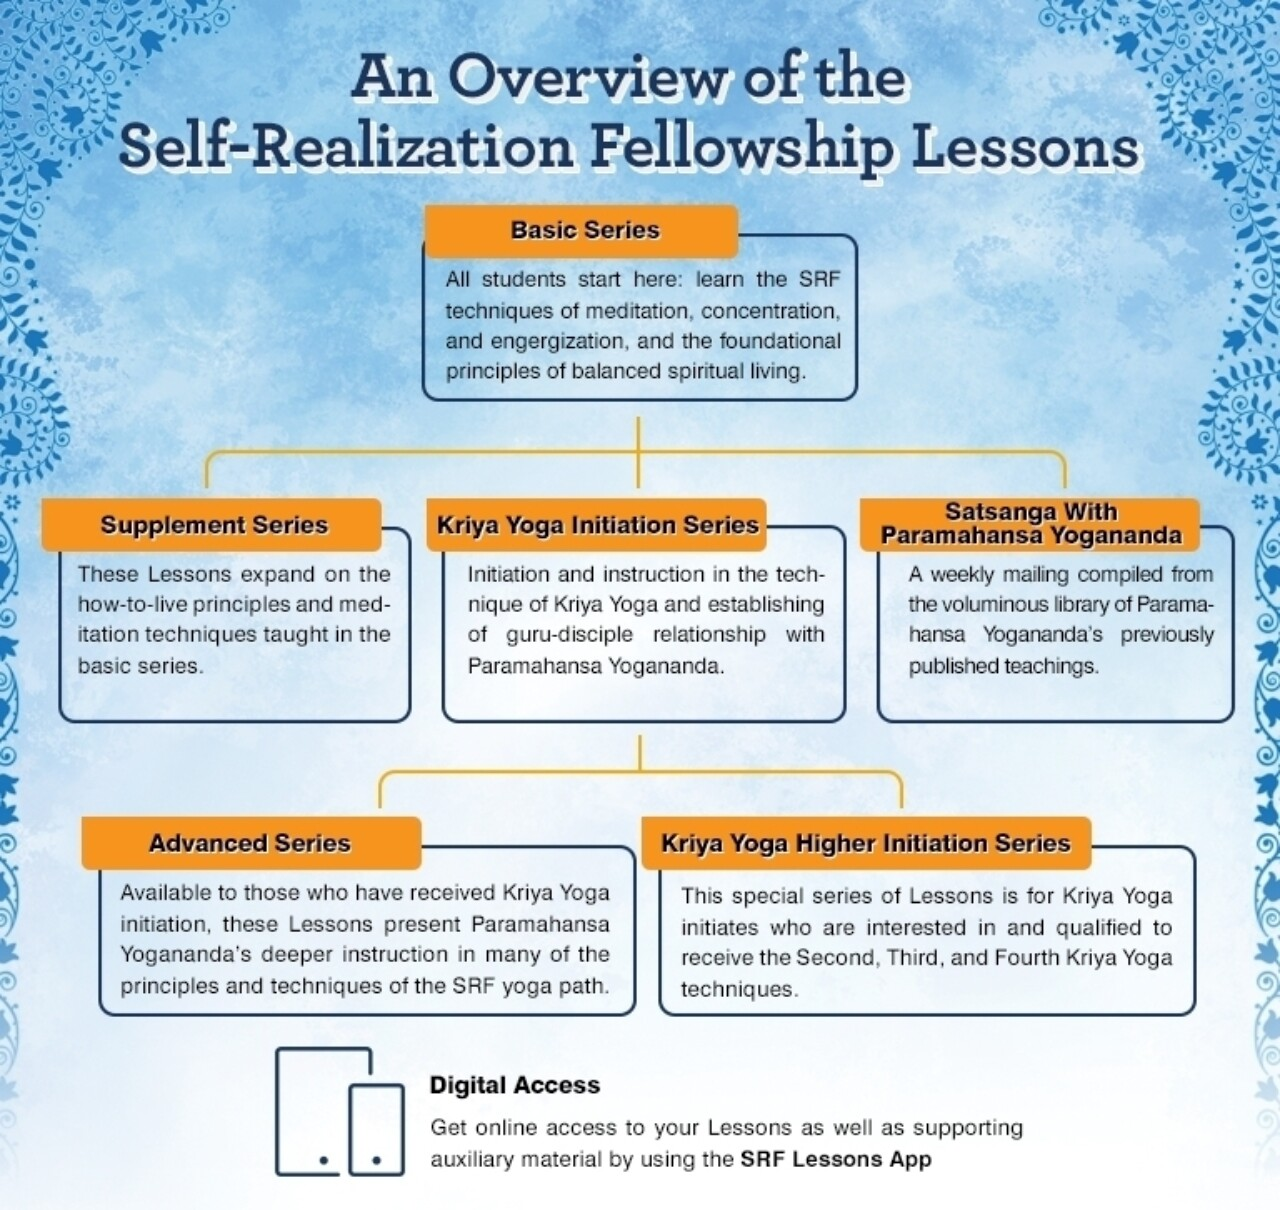 Lessons Overview